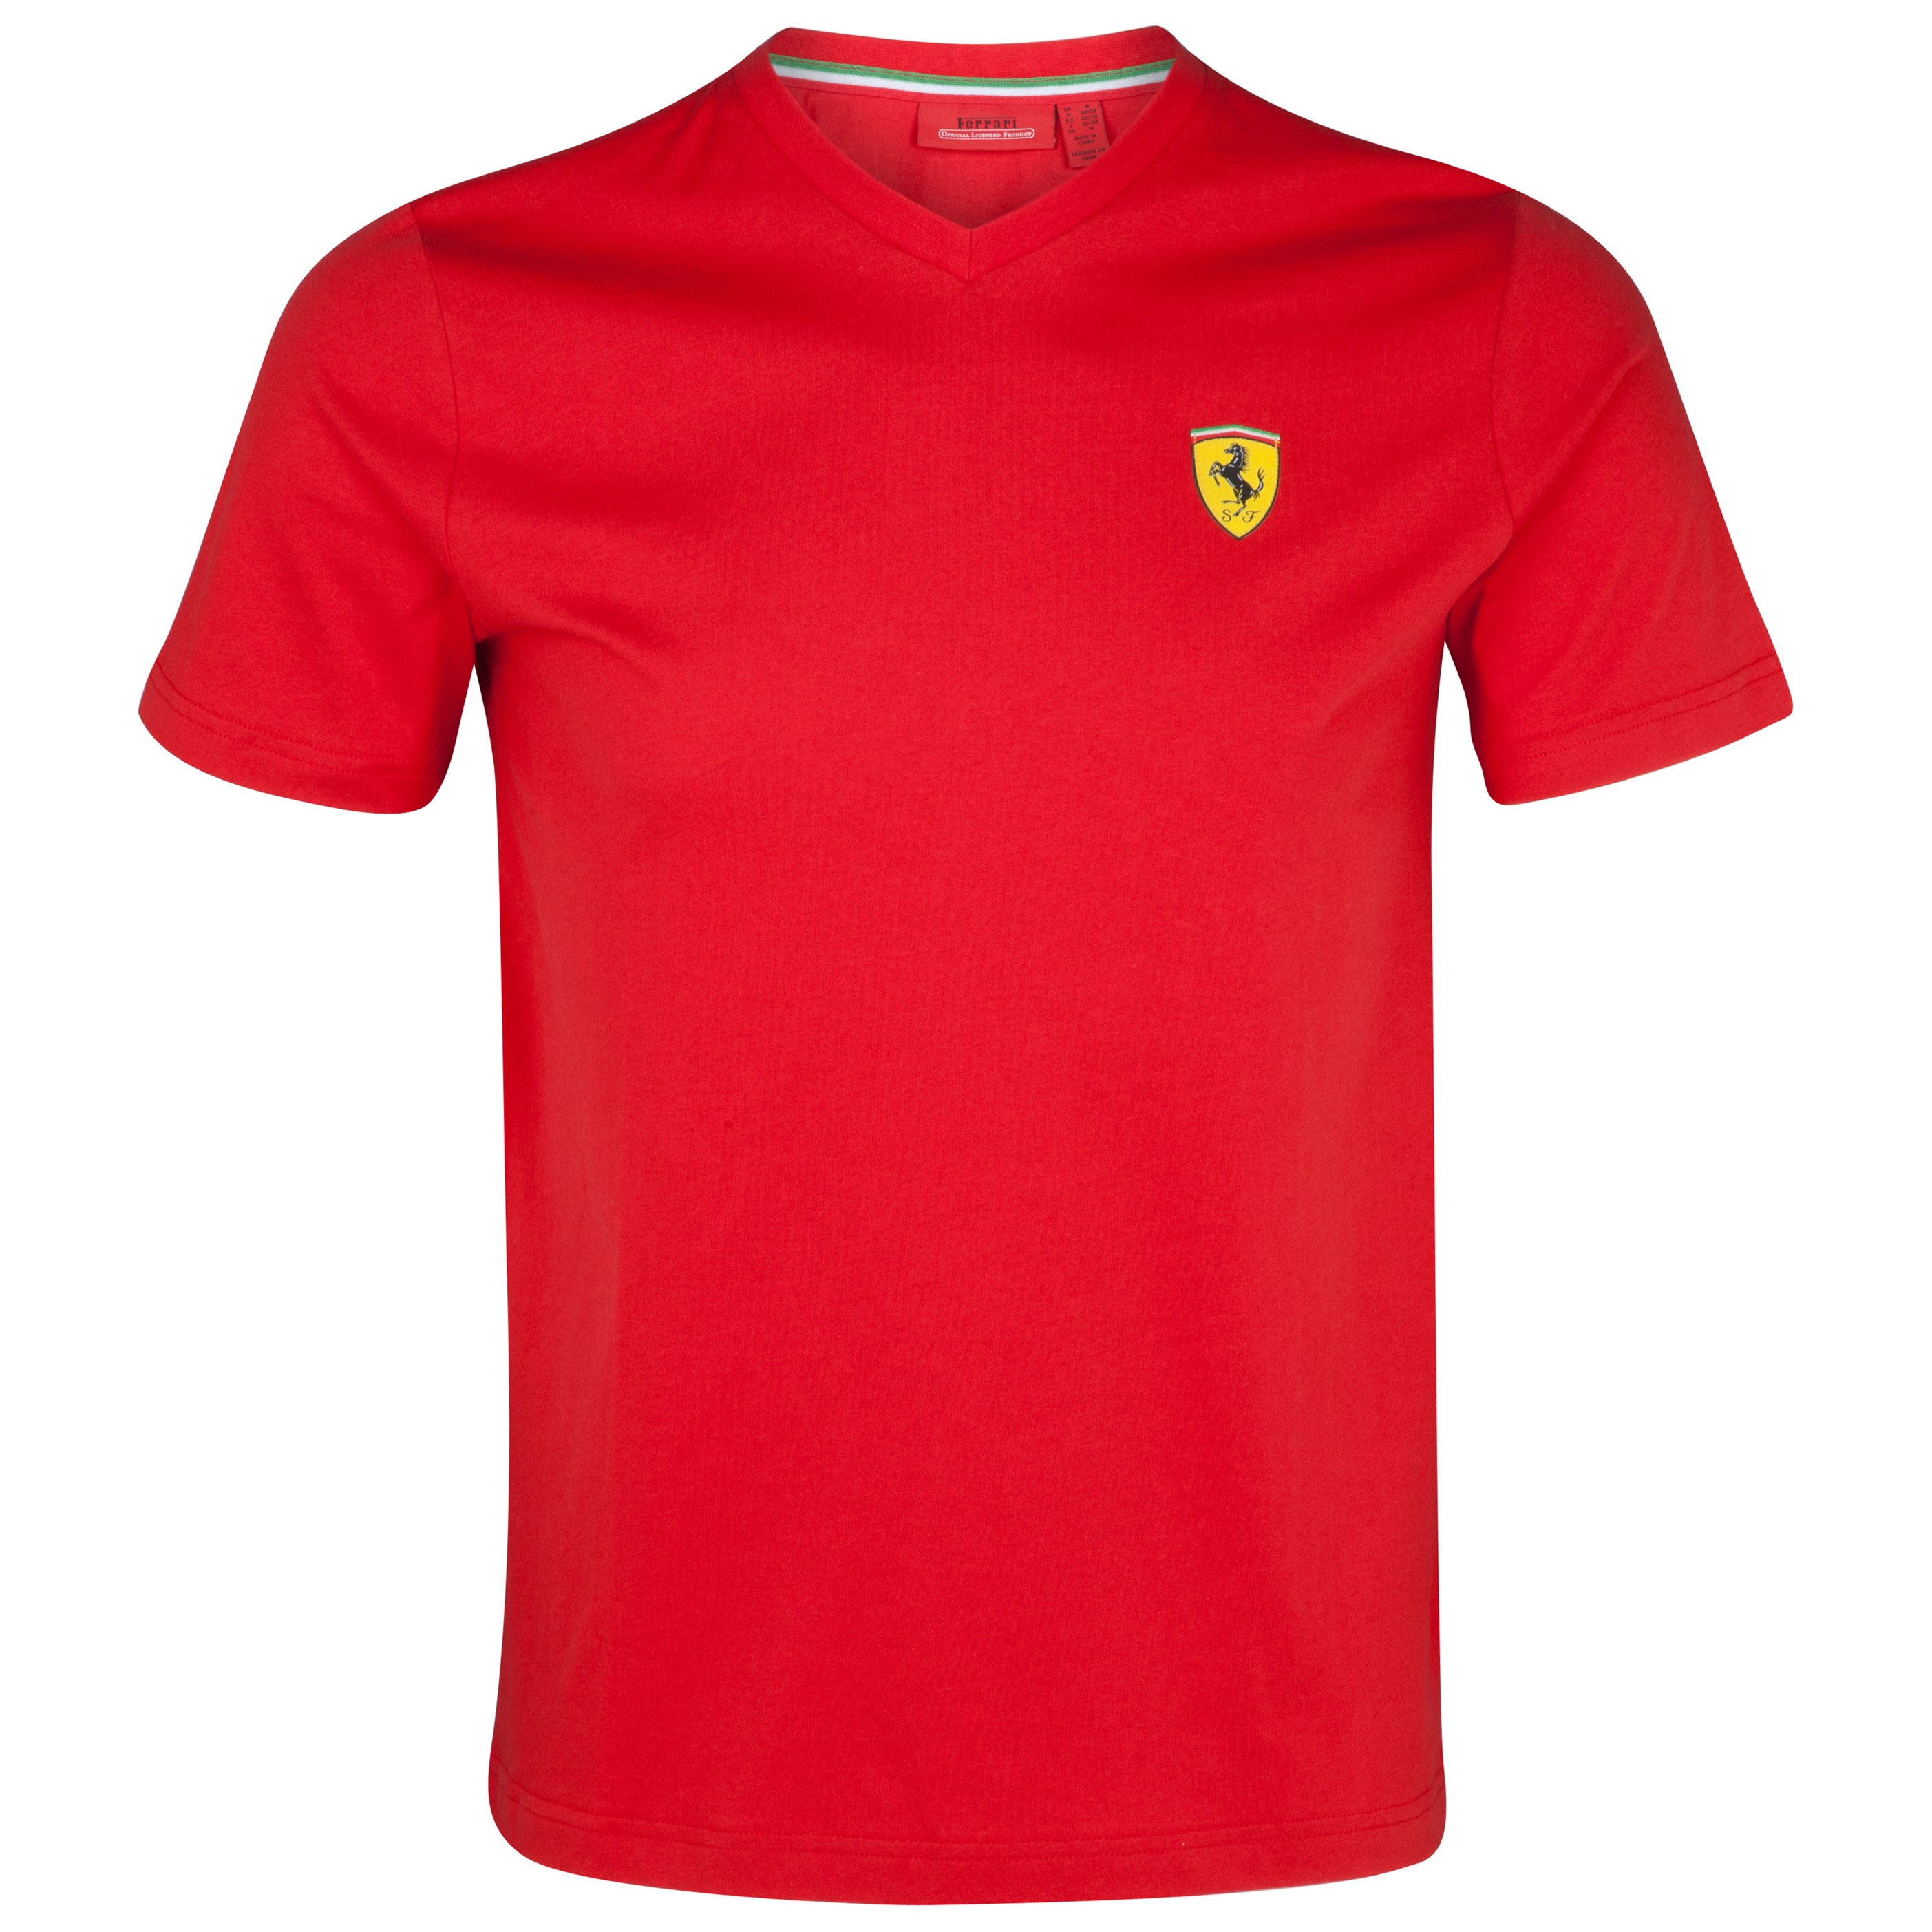 Scuderia Ferrari Santander V-Neck T-Shirt - Red